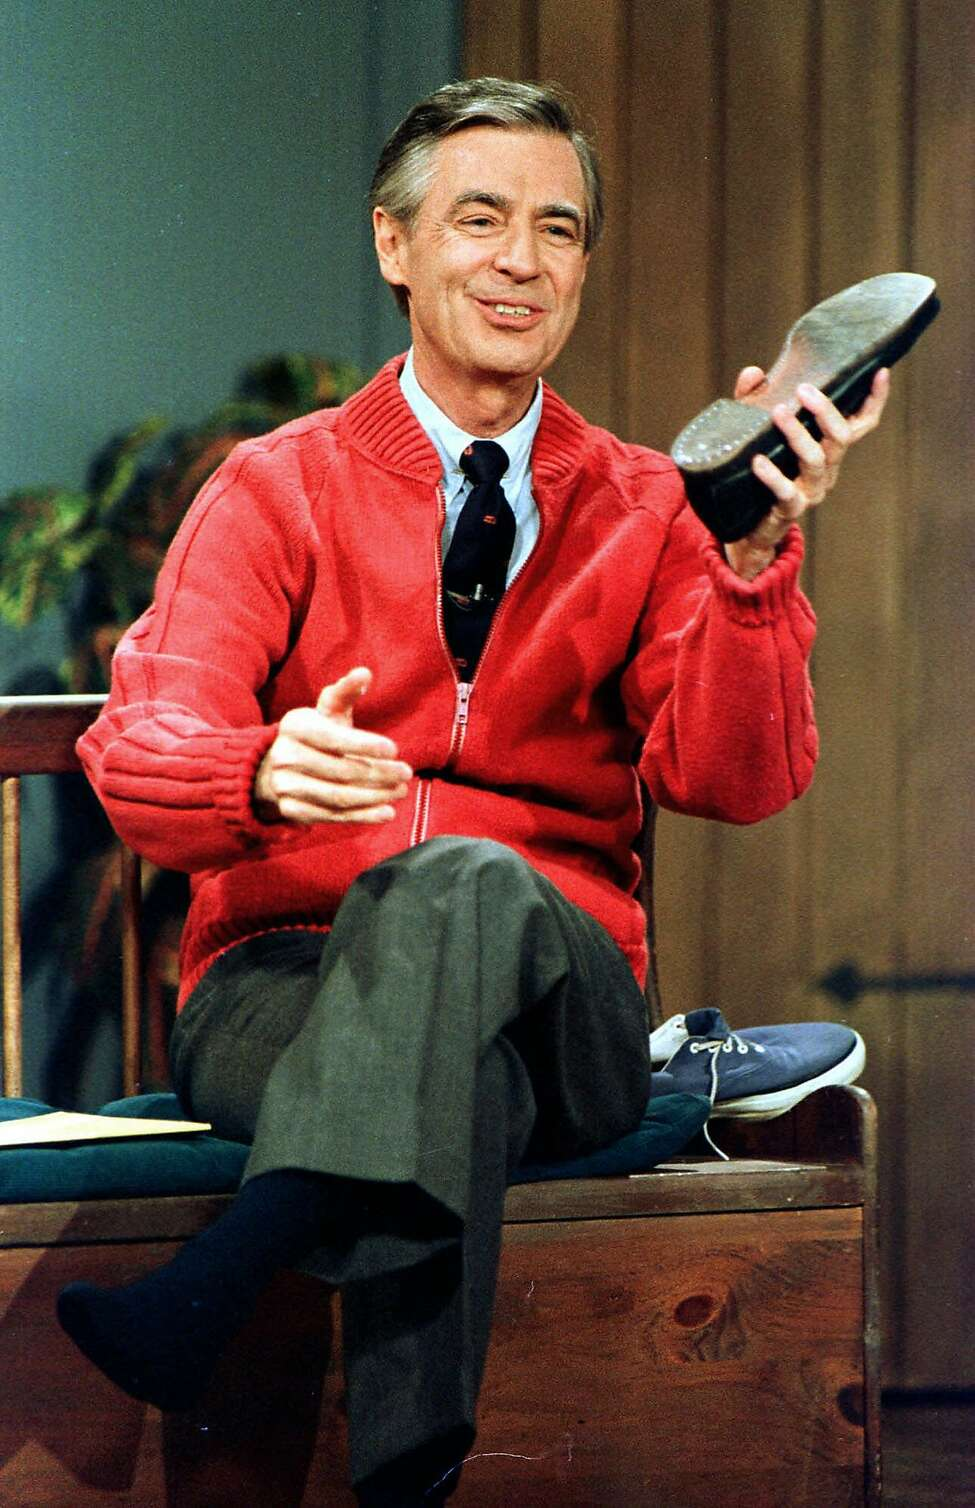 FILE - This June 28, 1989 file photo shows Fred Rogers as he rehearses the opening of his PBS show